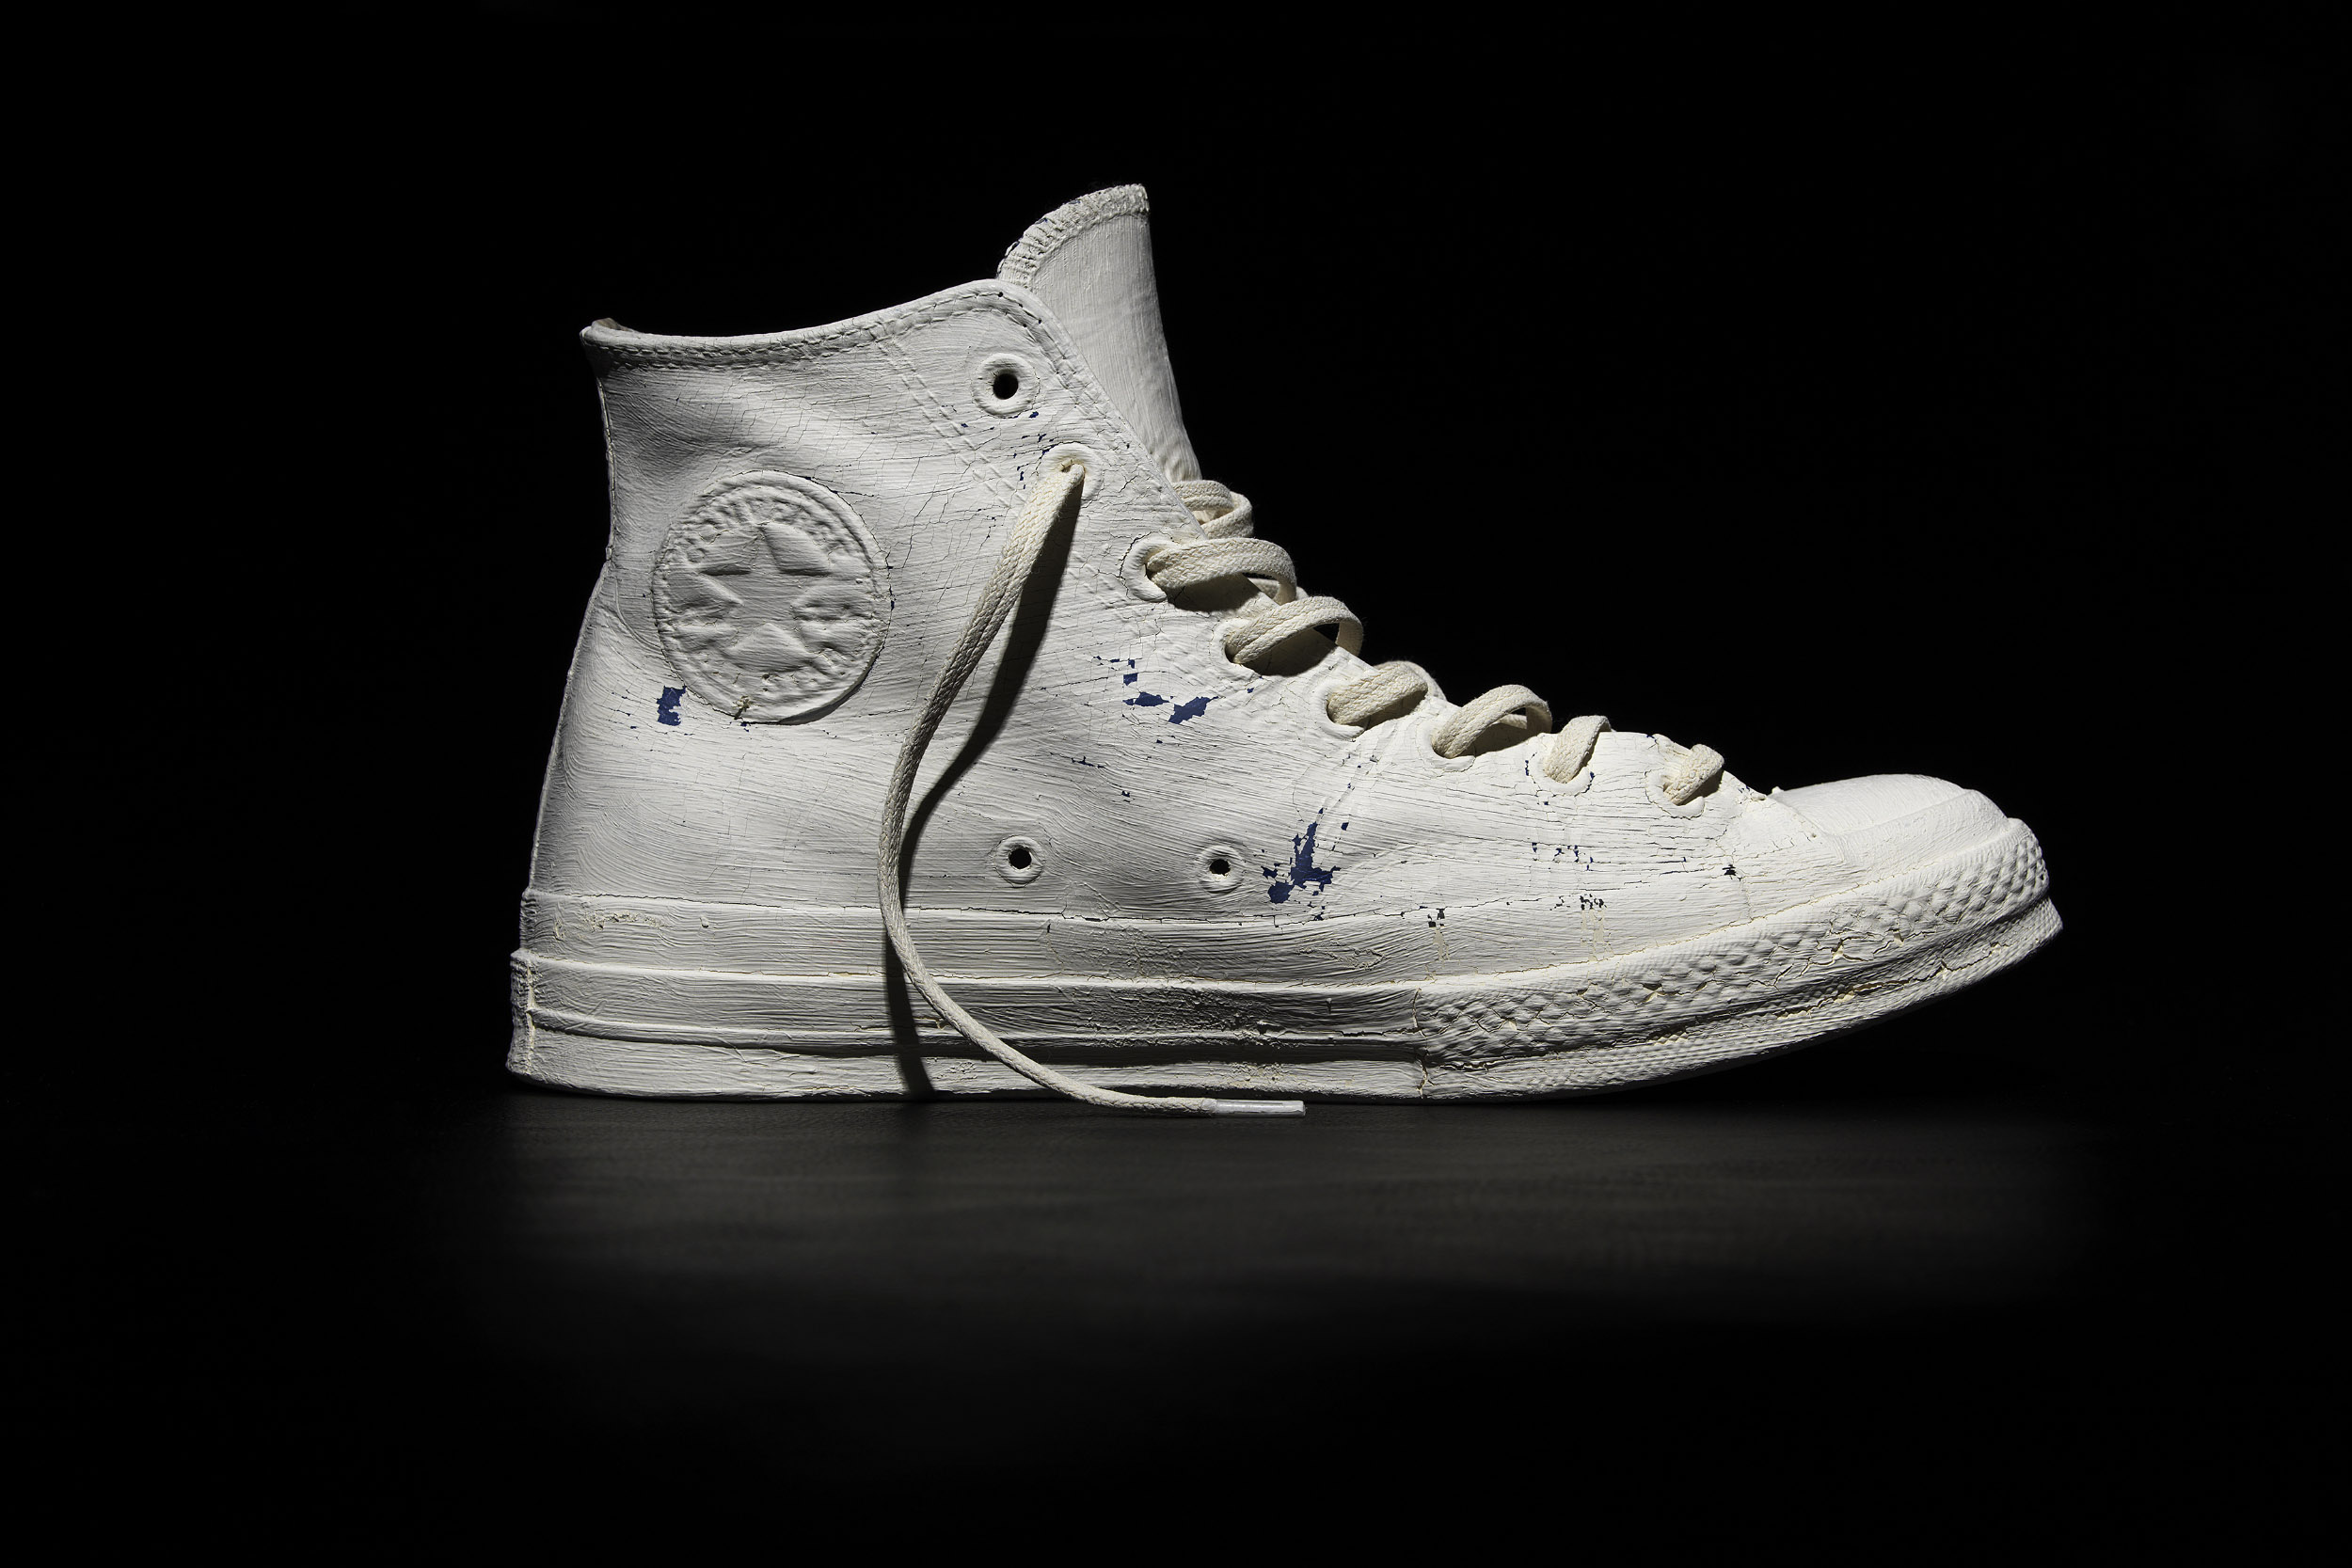 Converse_Maison_Martin_Margiela_All_Star_Chuck_70_Right_29816